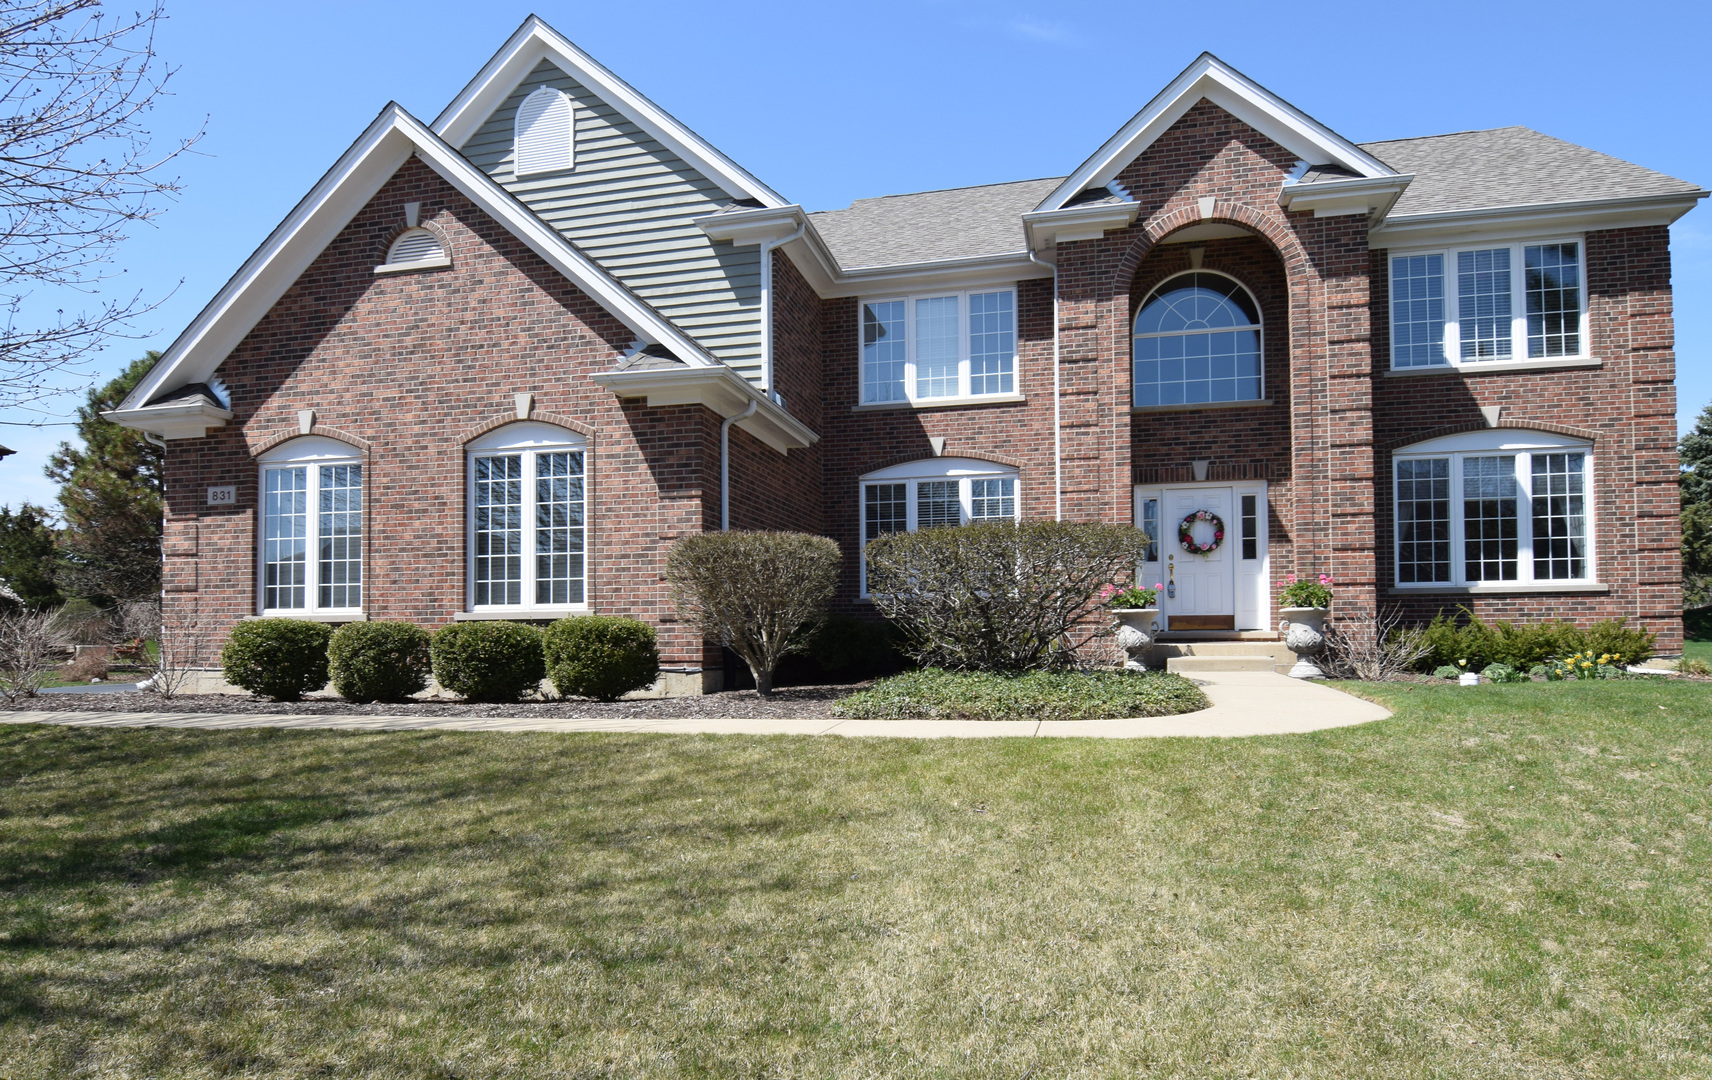 Property for sale at 831 Mason Lane, Lake In The Hills,  IL 60156